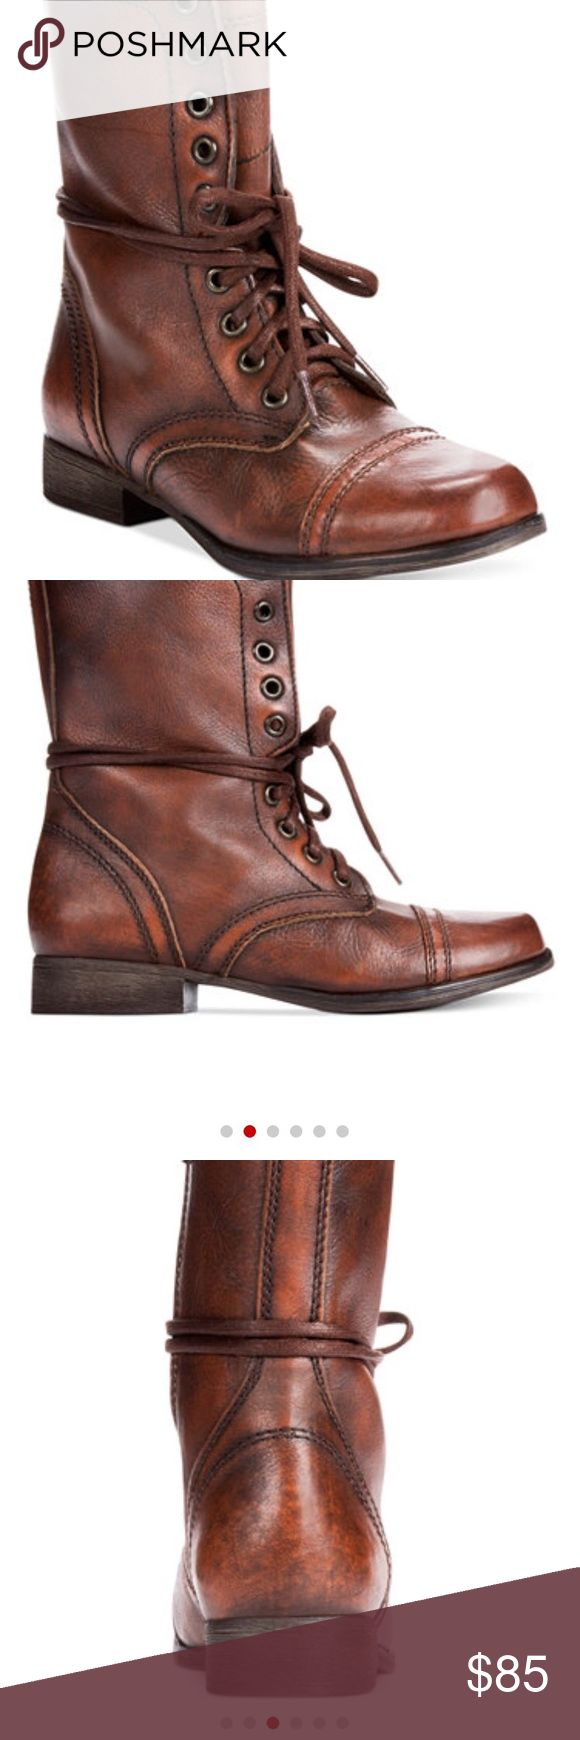 Steve Madden Troopa Combat Boots Brand new without box. only tried on the right shoe so these are in perfect condition. true to size. Steve Madden Shoes Combat & Moto Boots